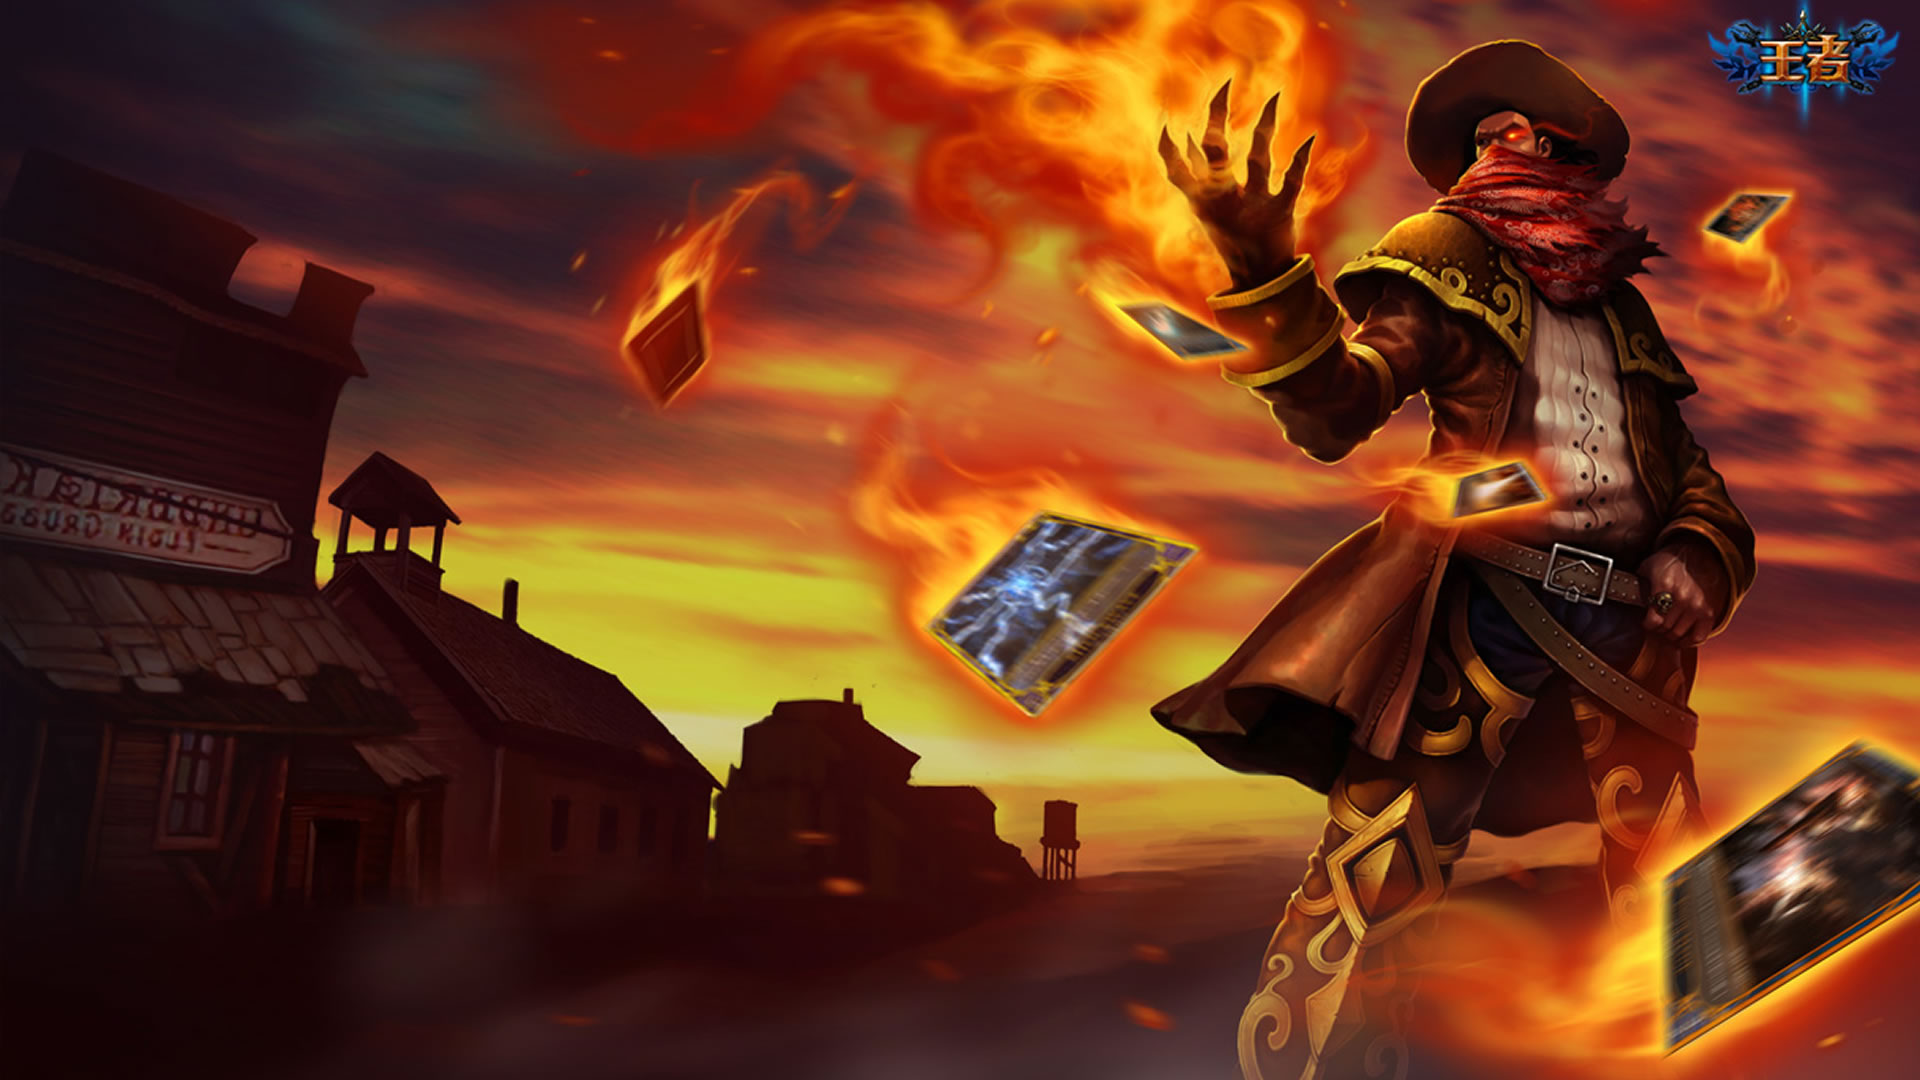 High Noon Twisted Fate Original 1920x1080